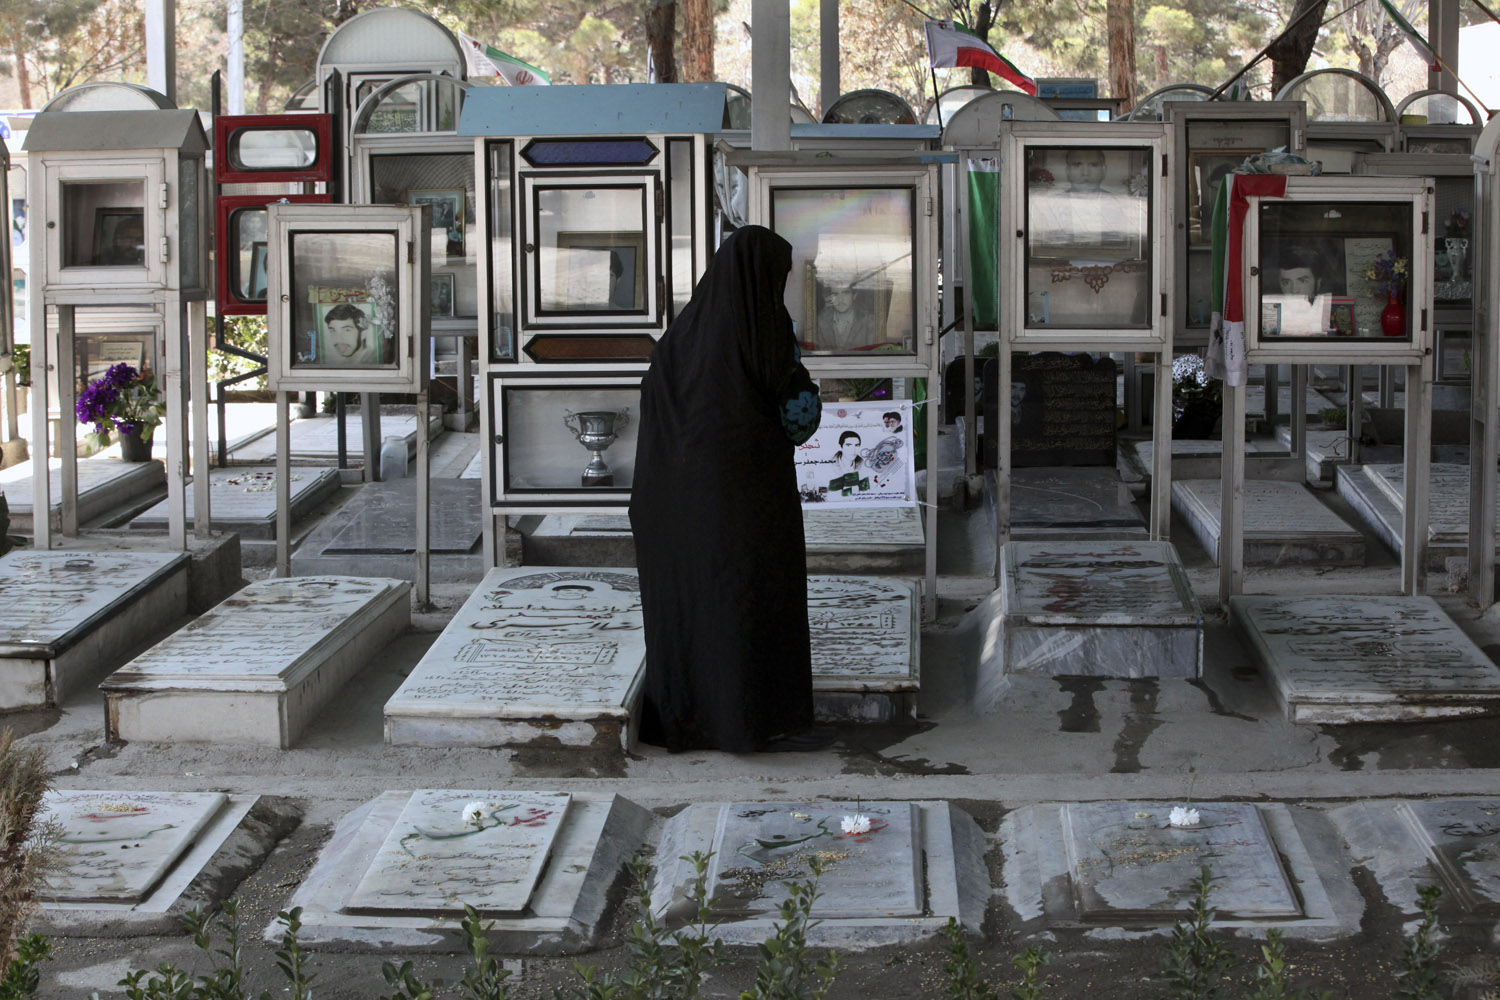 Mar. 20, 2014. An elderly Iranian woman looks at the graves of soldiers who were killed during 1980-88 Iran-Iraq war, at the Behesht-e-Zahra cemetery just outside Tehran, Iran.